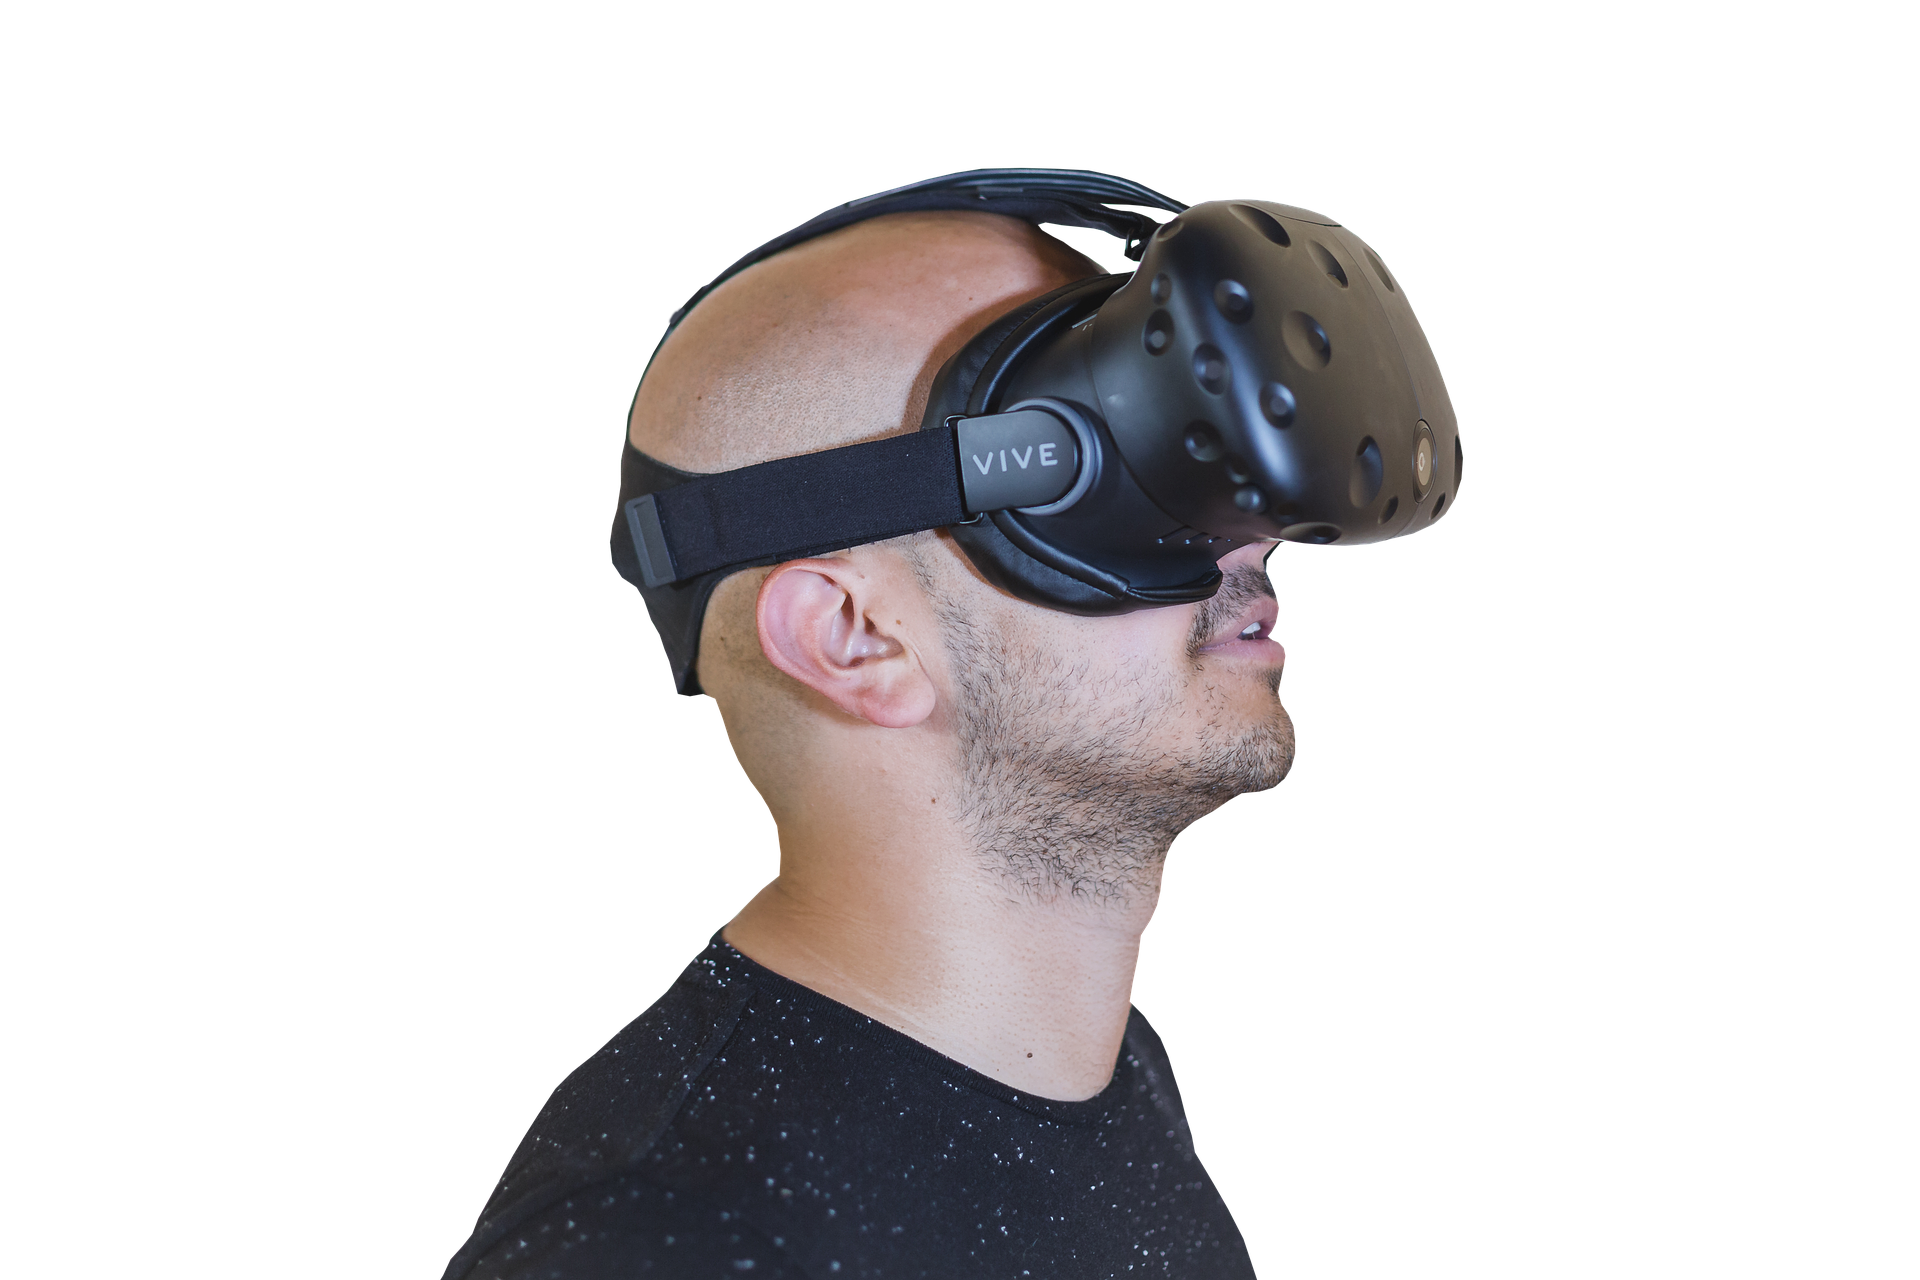 vr-3308573_1920.png